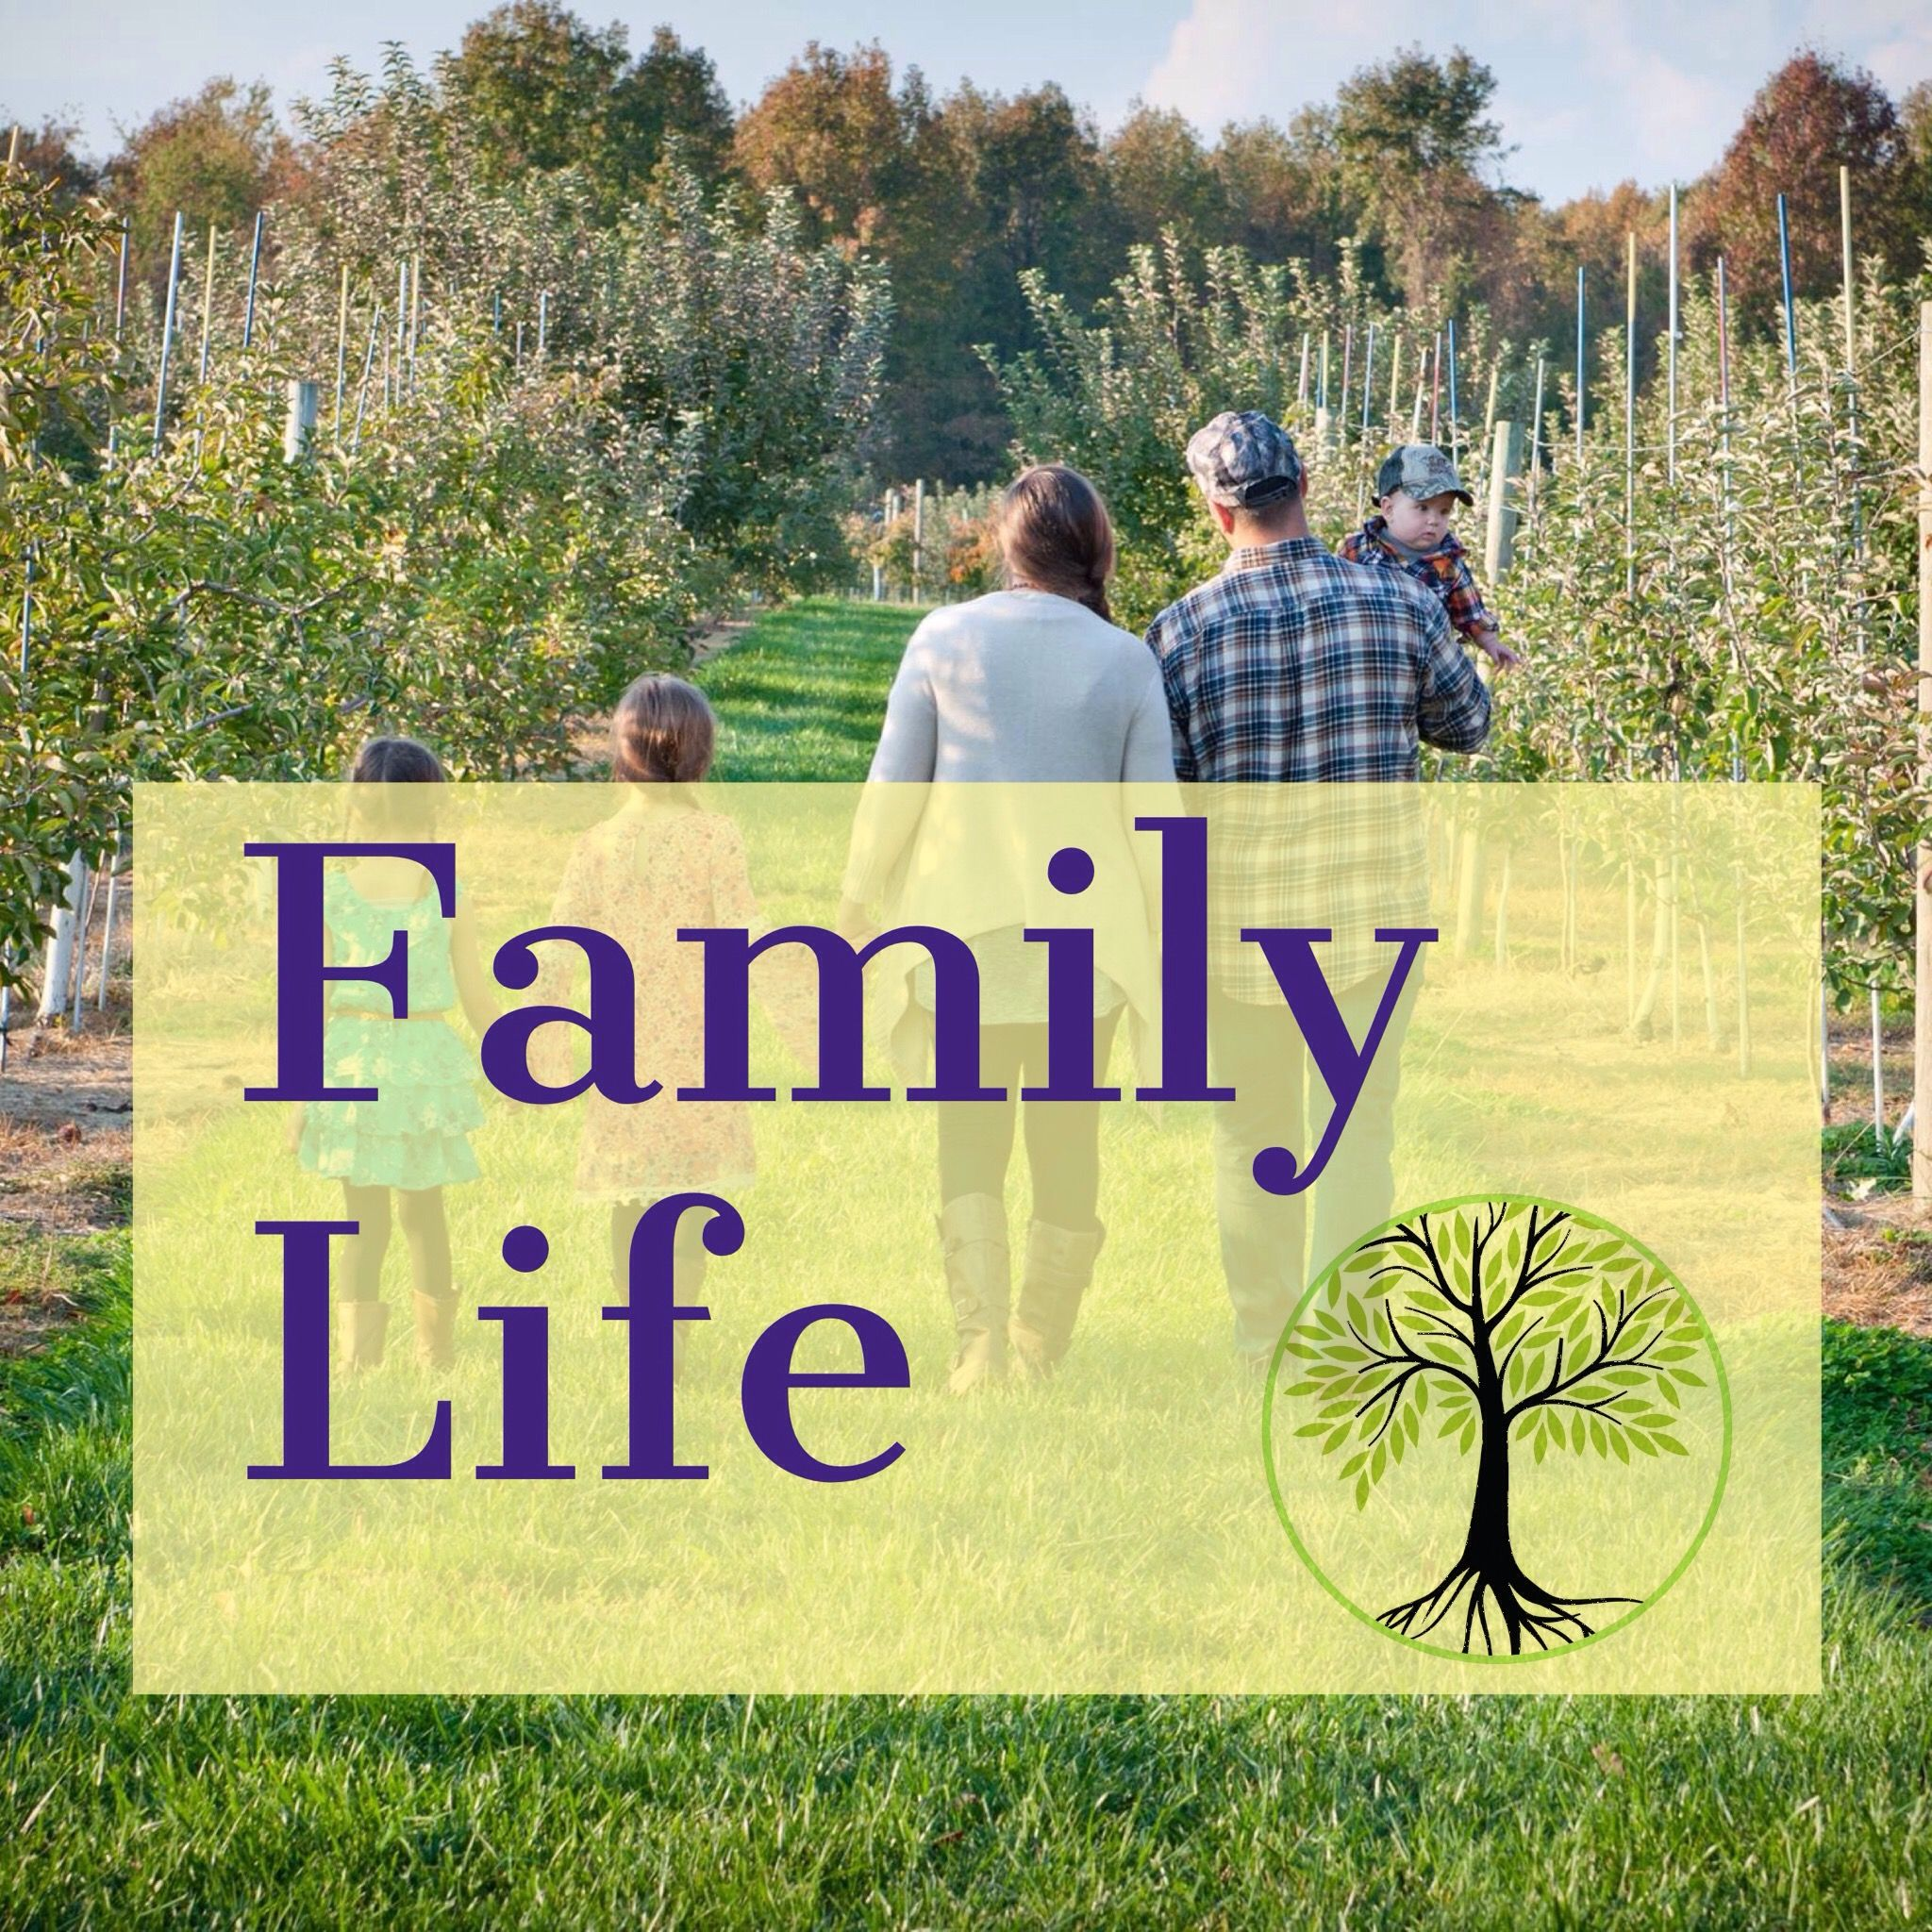 Family Life Image By Lil Olive Tree